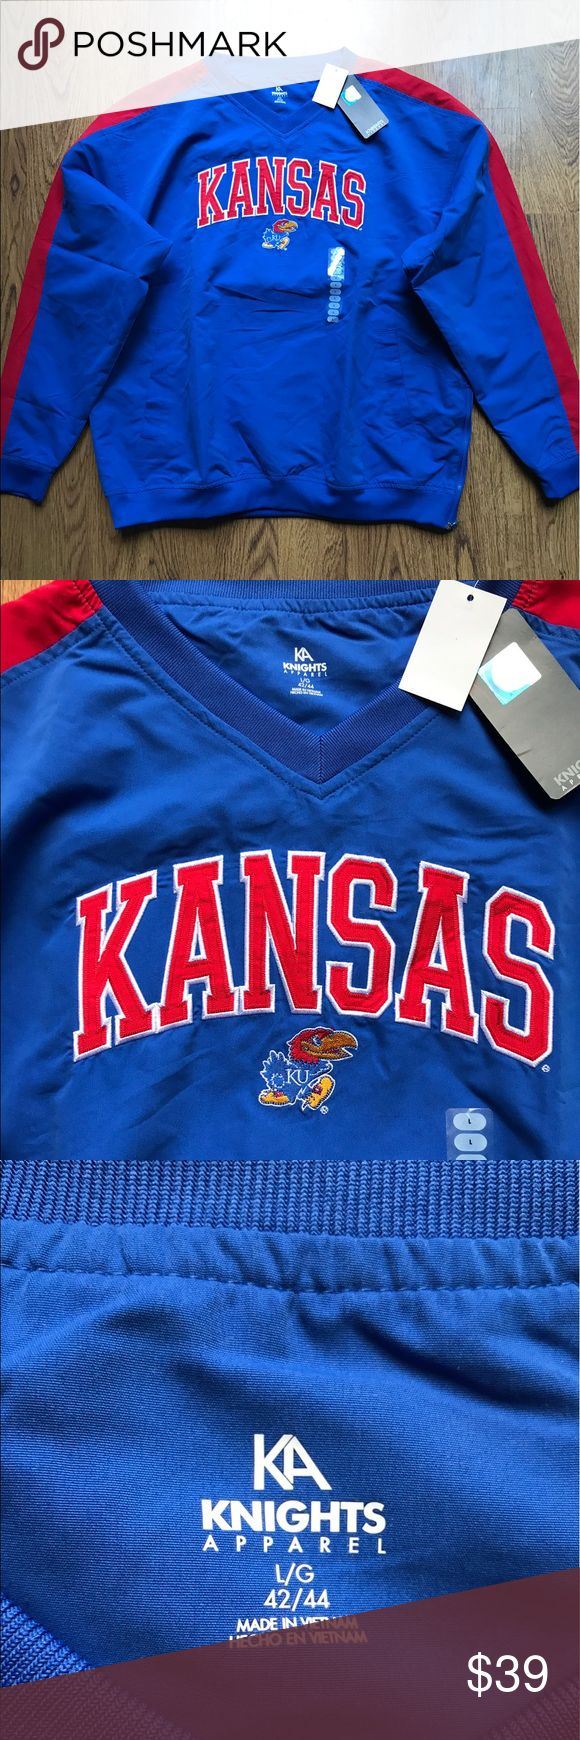 """Knights Apparel KSU Jayhawks Pullover Windbreaker Awesome Brand New Men's Knights Apparel Kansas State University KSU Jayhawks Pullover Windbreaker Sz L. See pics for further detail. This Pullover is in great condition    Measurements-  Armpit to Armpit: 25 1/2""""  Length (From Shoulder to bottom of Jacket): 28""""   For any and all questions or concerns please do not hesitate to reach out. We welcome and encourage all communication and will generally respond same day. knights Apparel Jackets…"""